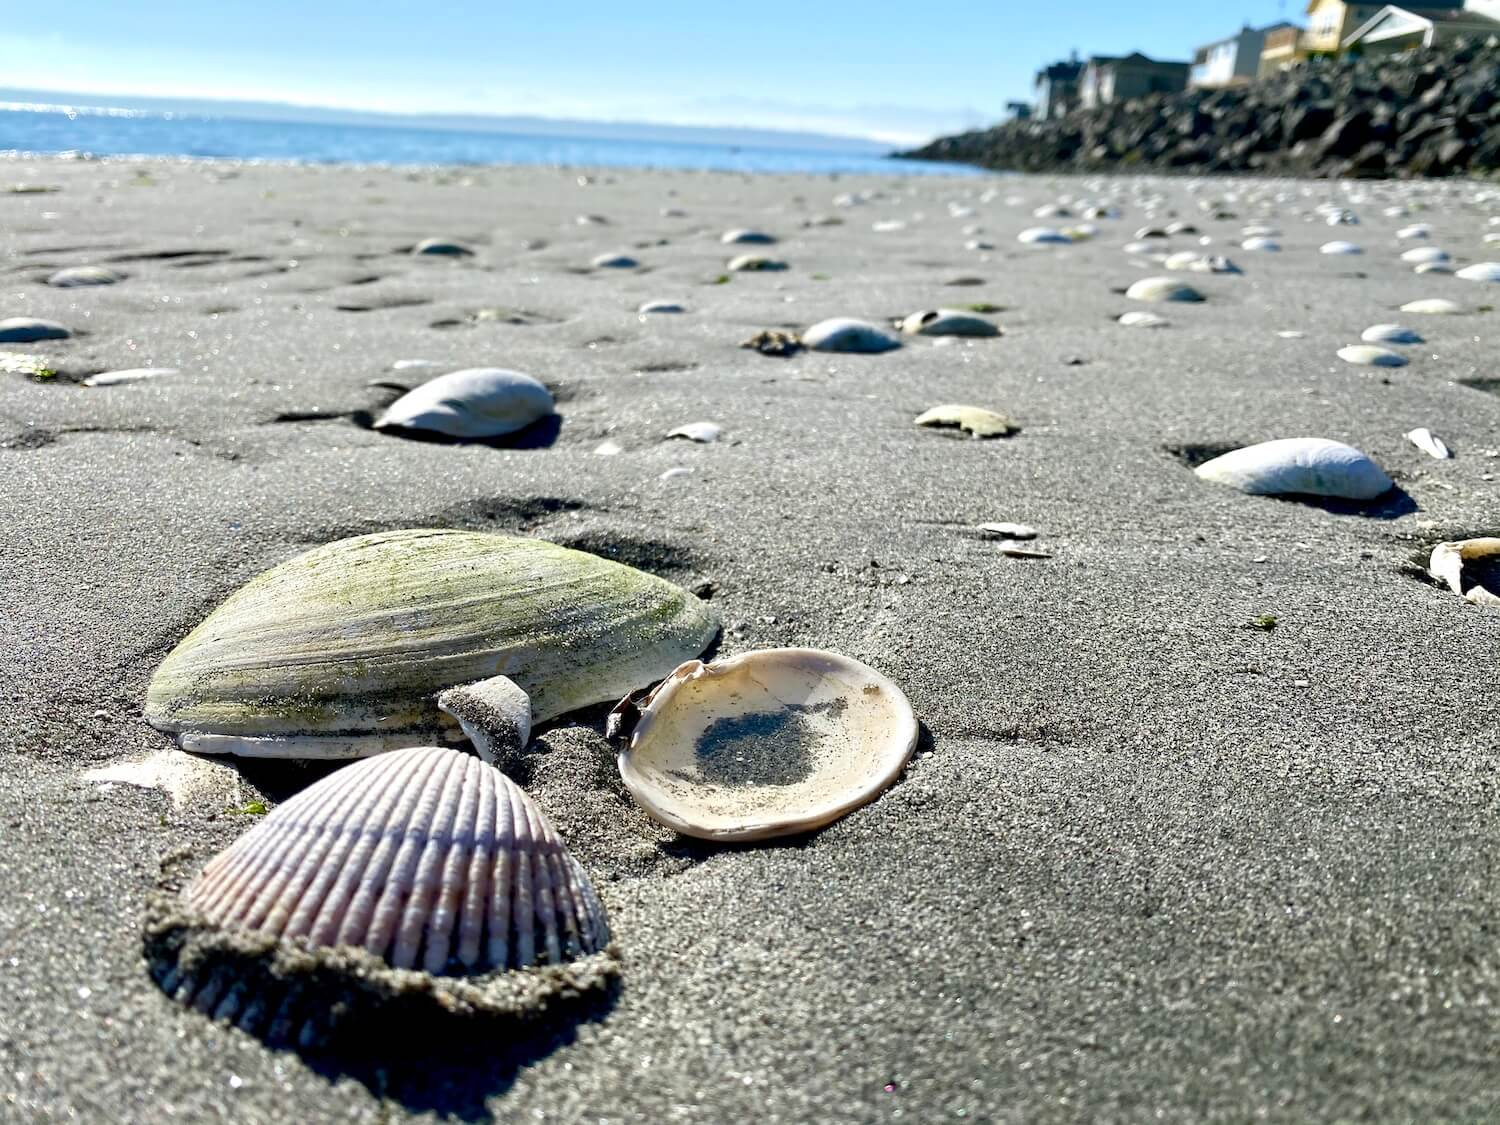 Seashells lay on a beach at low tide. The background is out of focus with a jetty of rocks and houses on top of them. Blue sky is above the water in the background.